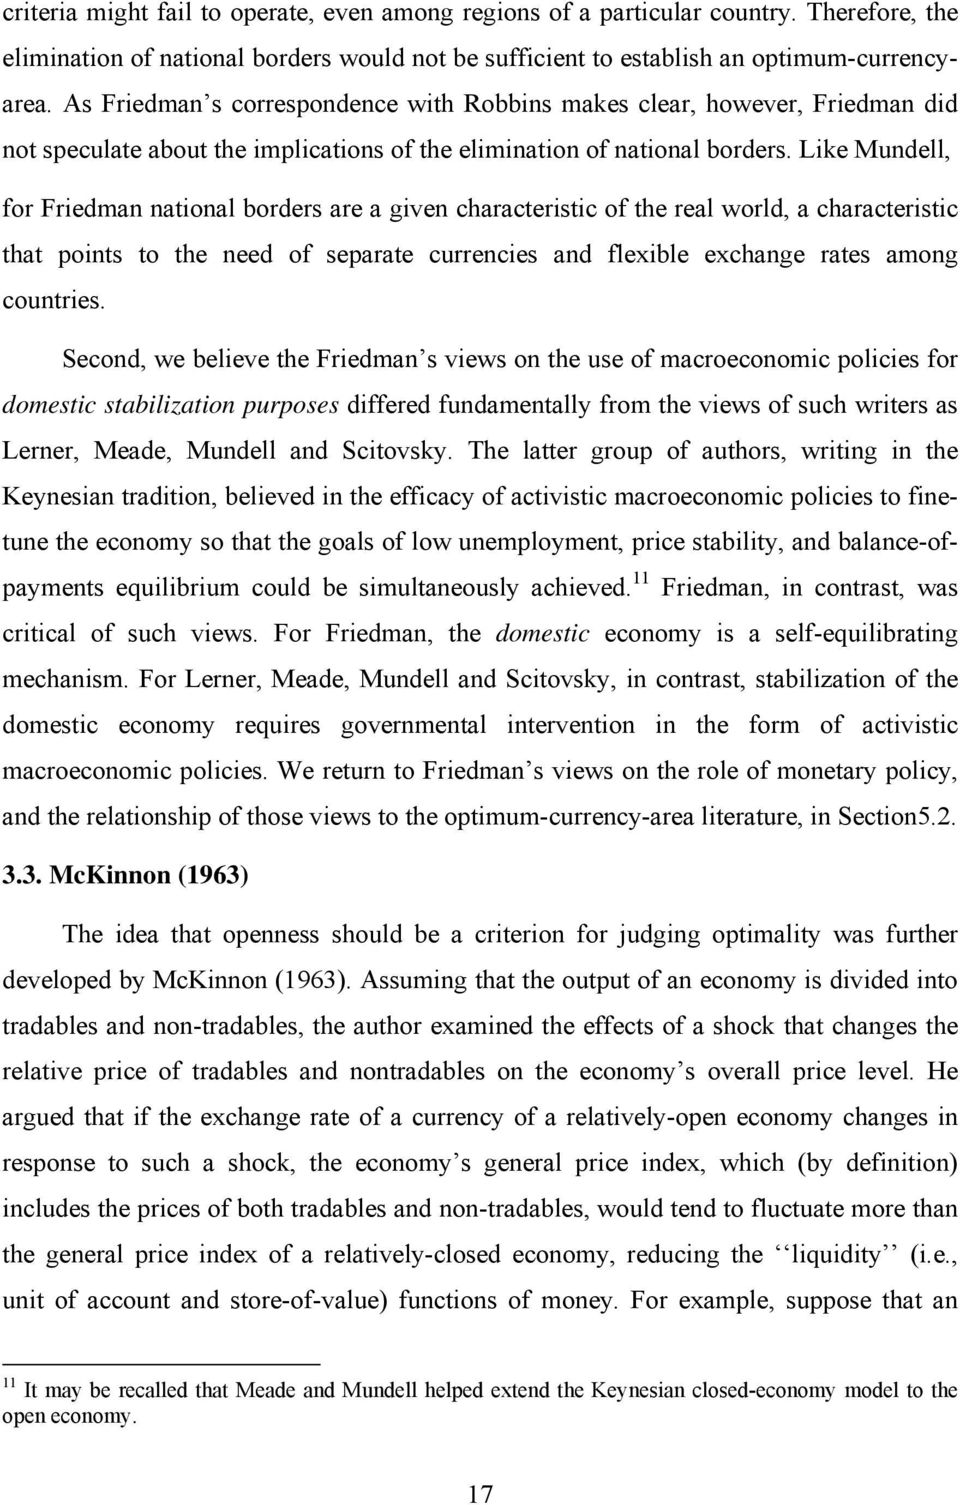 Like Mundell, for Friedman national borders are a given characteristic of the real world, a characteristic that points to the need of separate currencies and flexible exchange rates among countries.